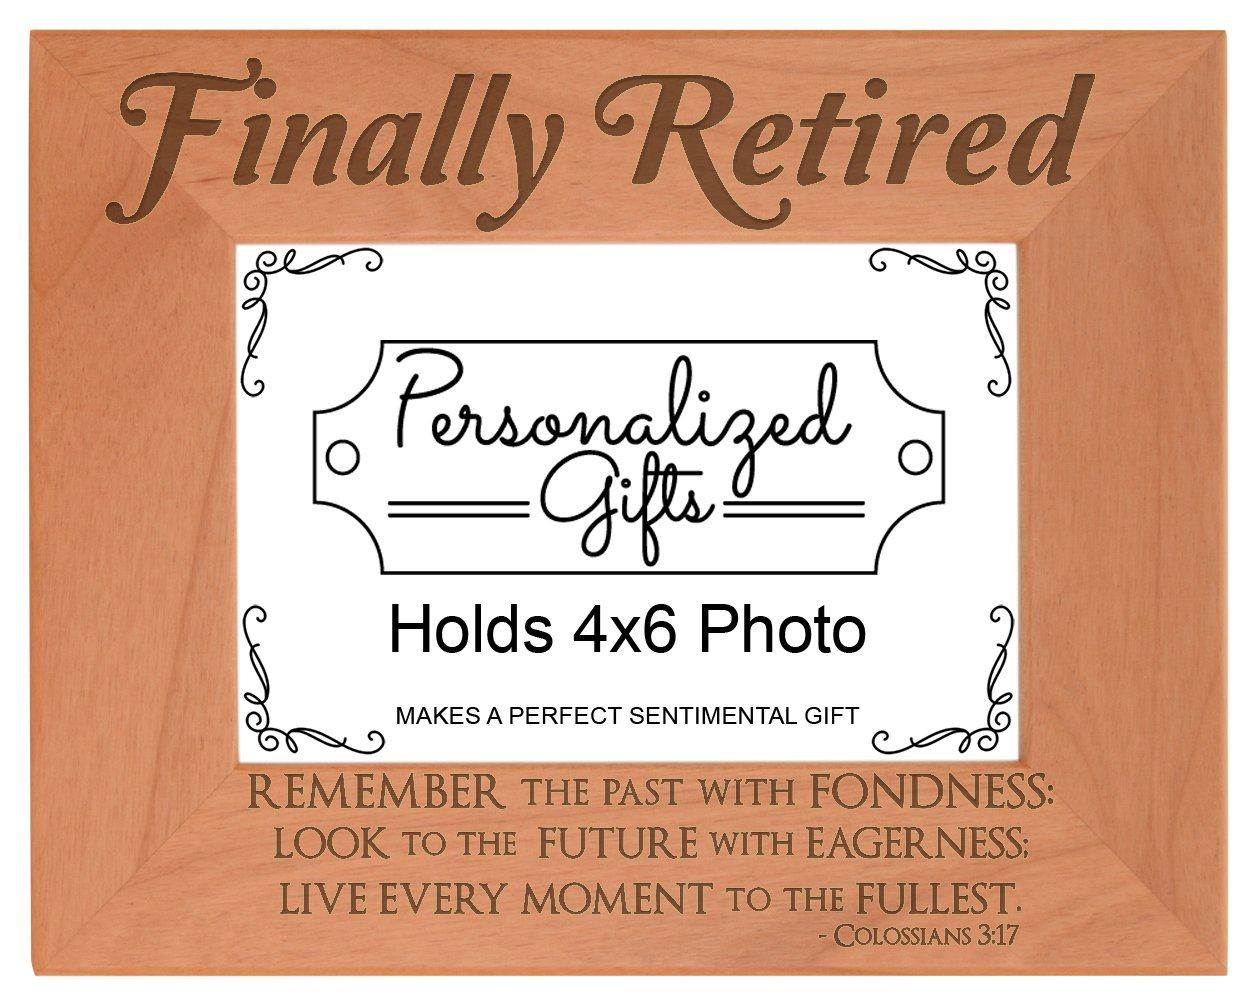 Retirement Gifts Women Finally Retired Remember Past Fondness Colossians 3:17 Christian Natural Wood Engraved 4x6 Landscape Picture Frame Wood